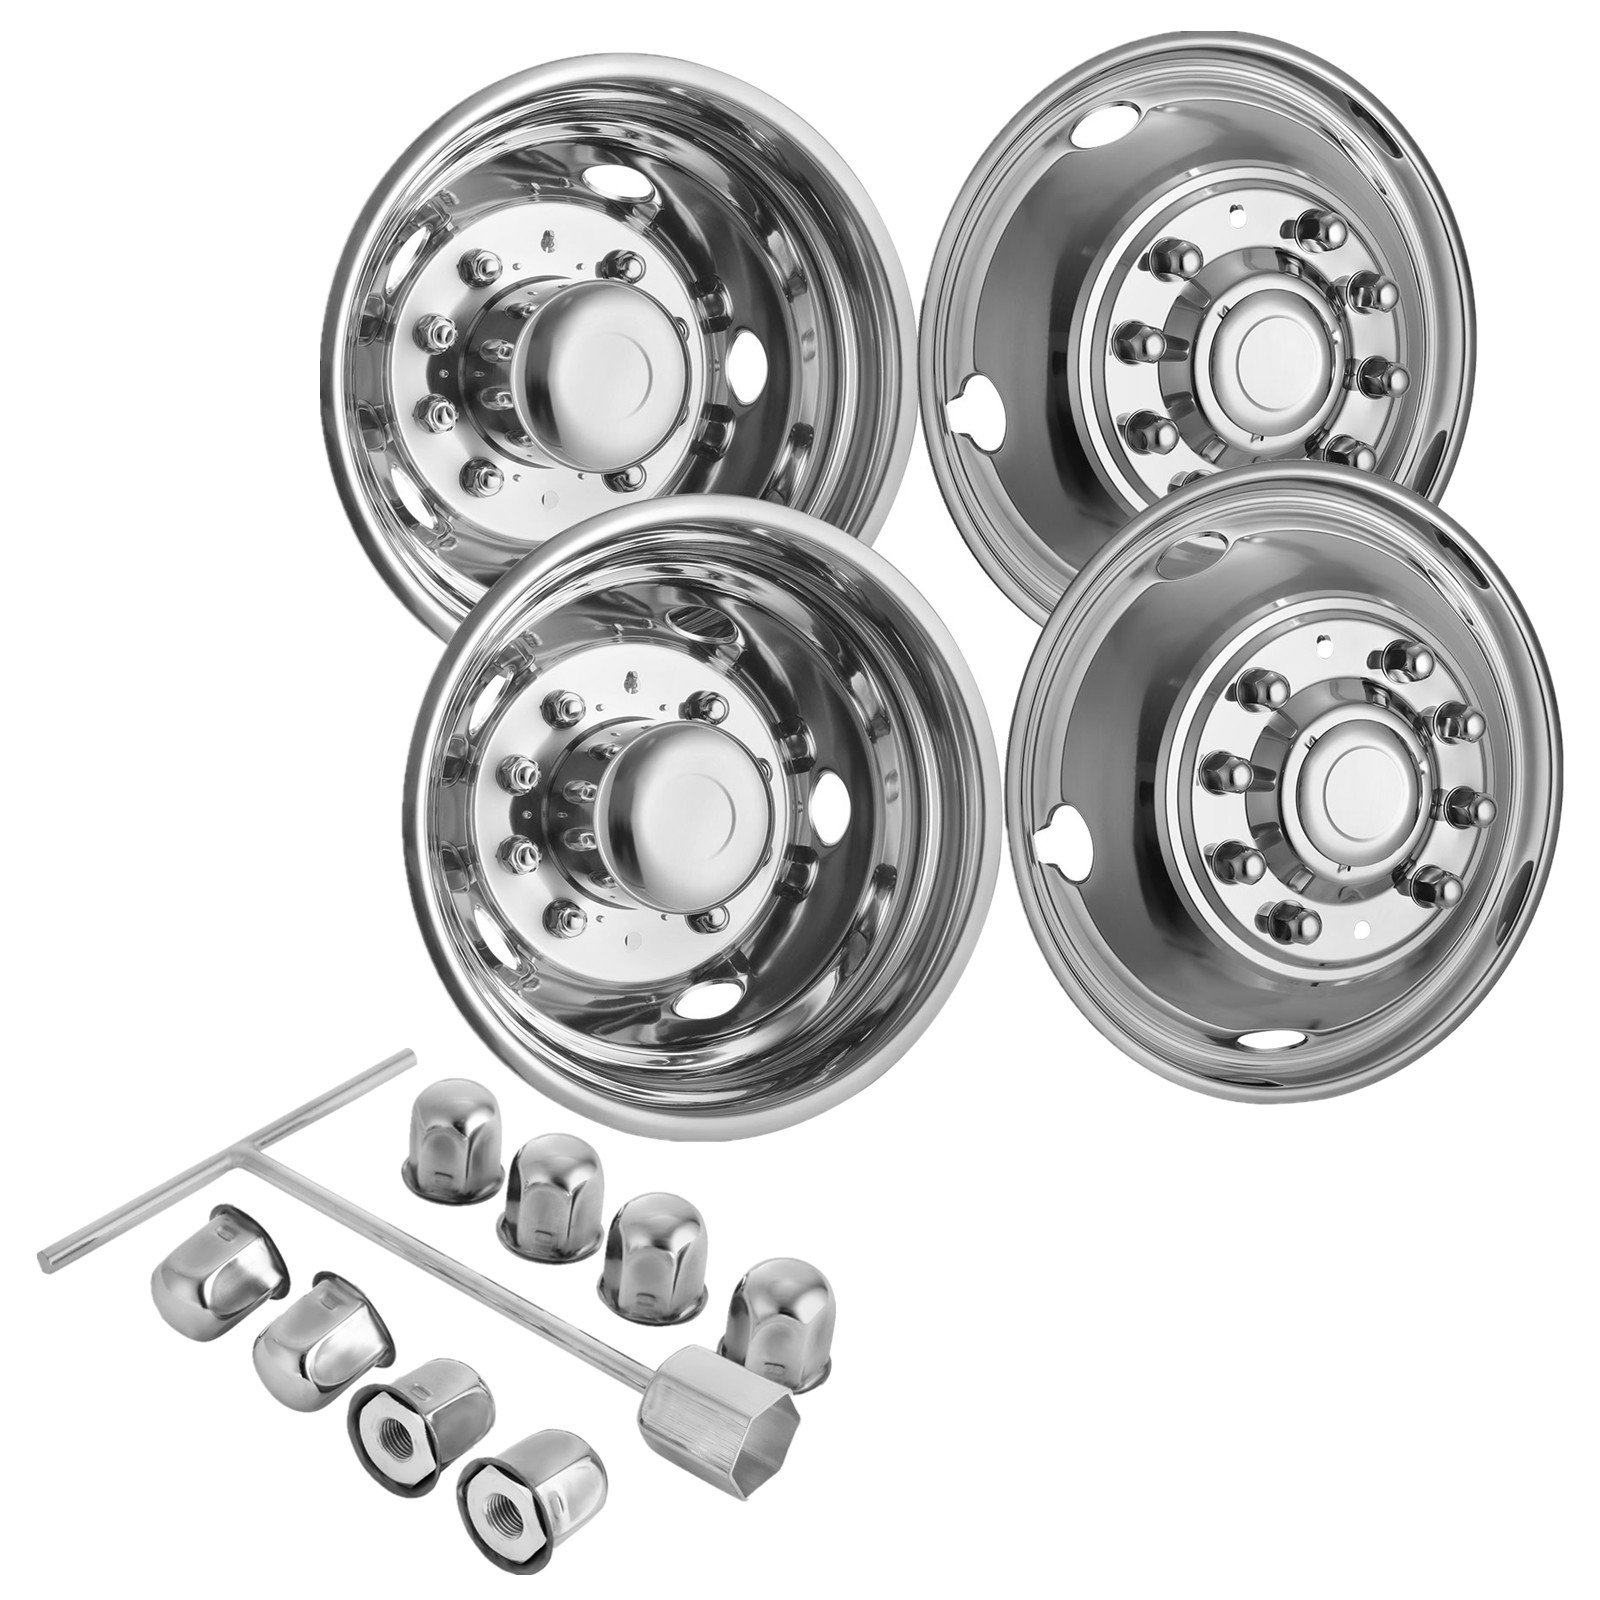 Mophorn 4 PCS of Wheel Simulators 19.5 Inch 10 Lug Hubcap Kit Fit for 2005-2017 Ford F450 - F550 2WD Trunk Polished Stainless Steel Bolt On Dually Wheel Cover Set (19.5'')